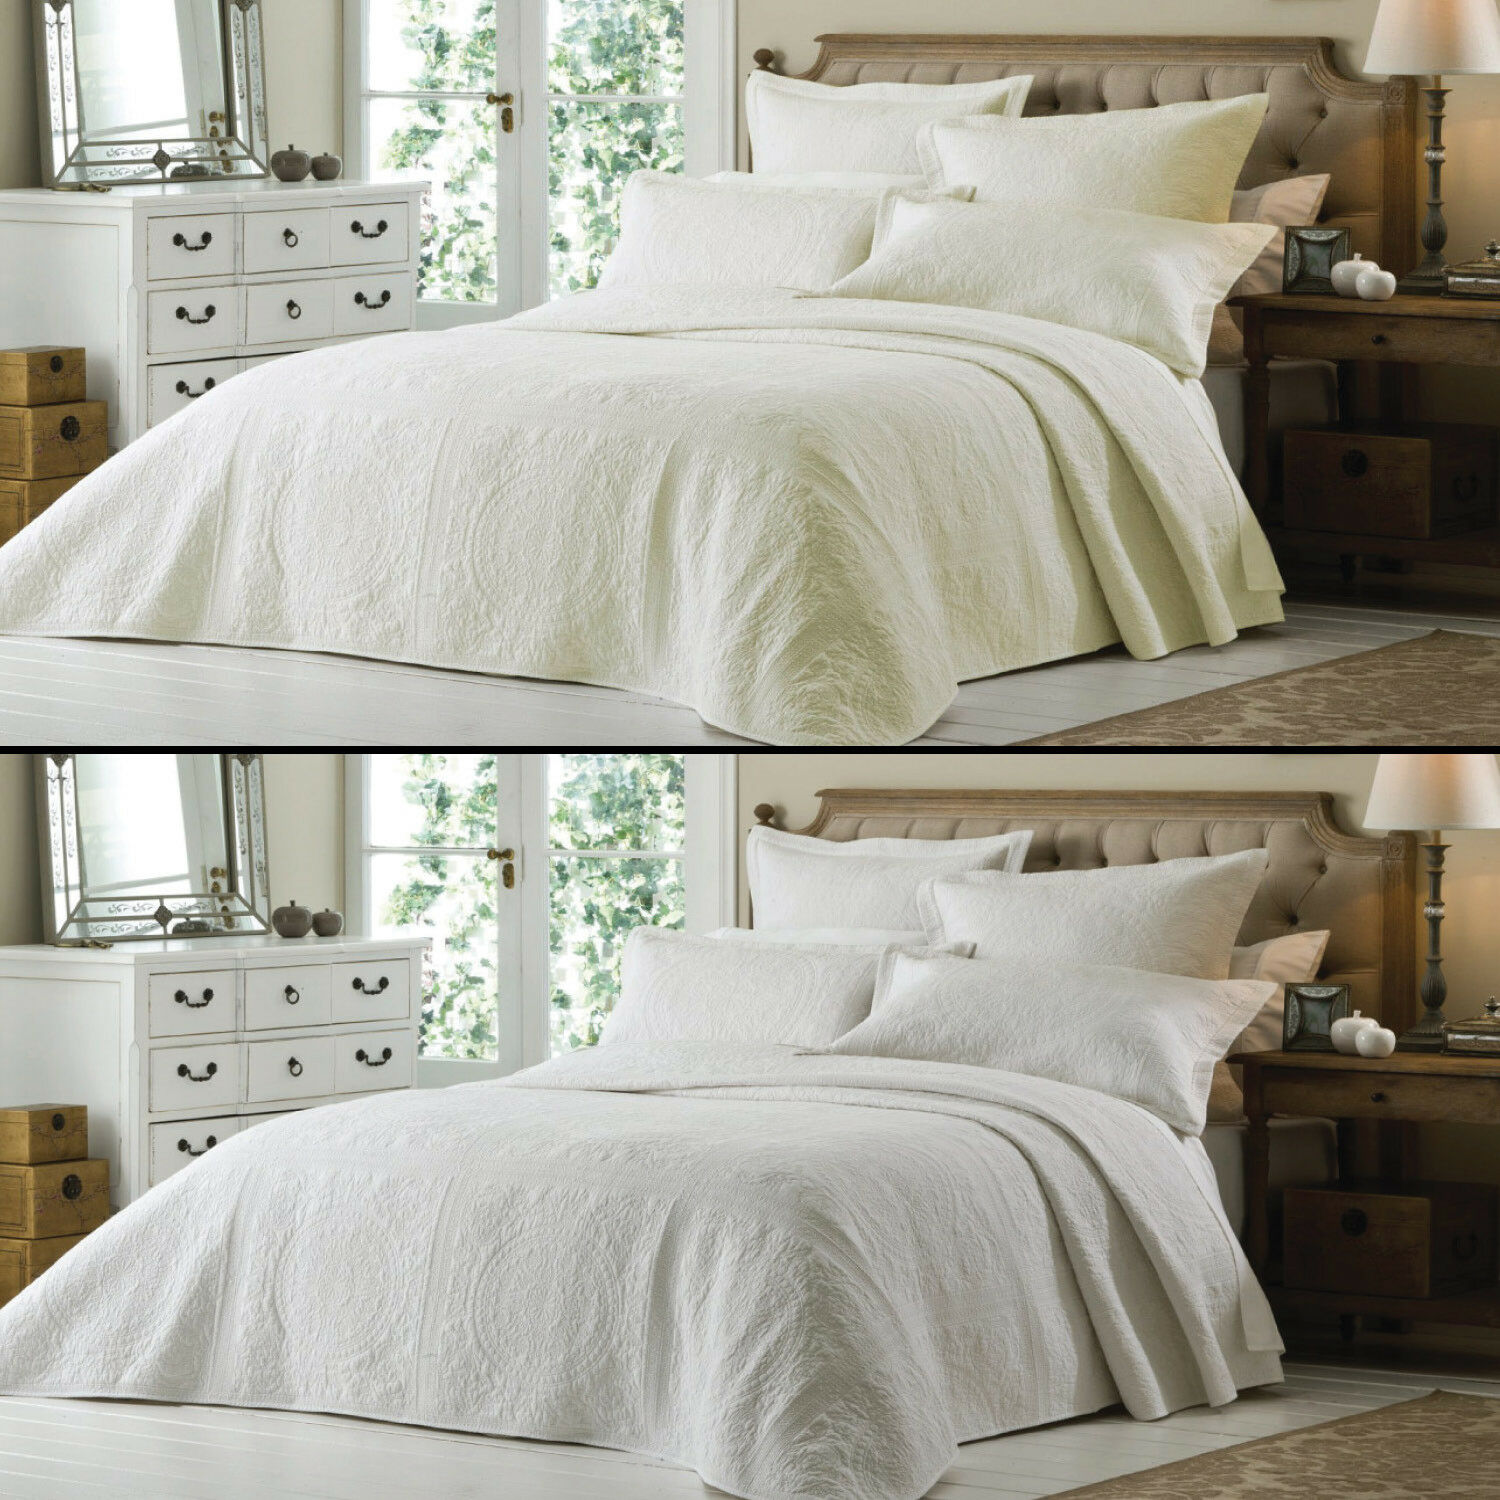 LUXURY EMBROIDErot IVORY CREAM Weiß QUILTED BEDSPREAD BED QUILT THROW COVER NEW